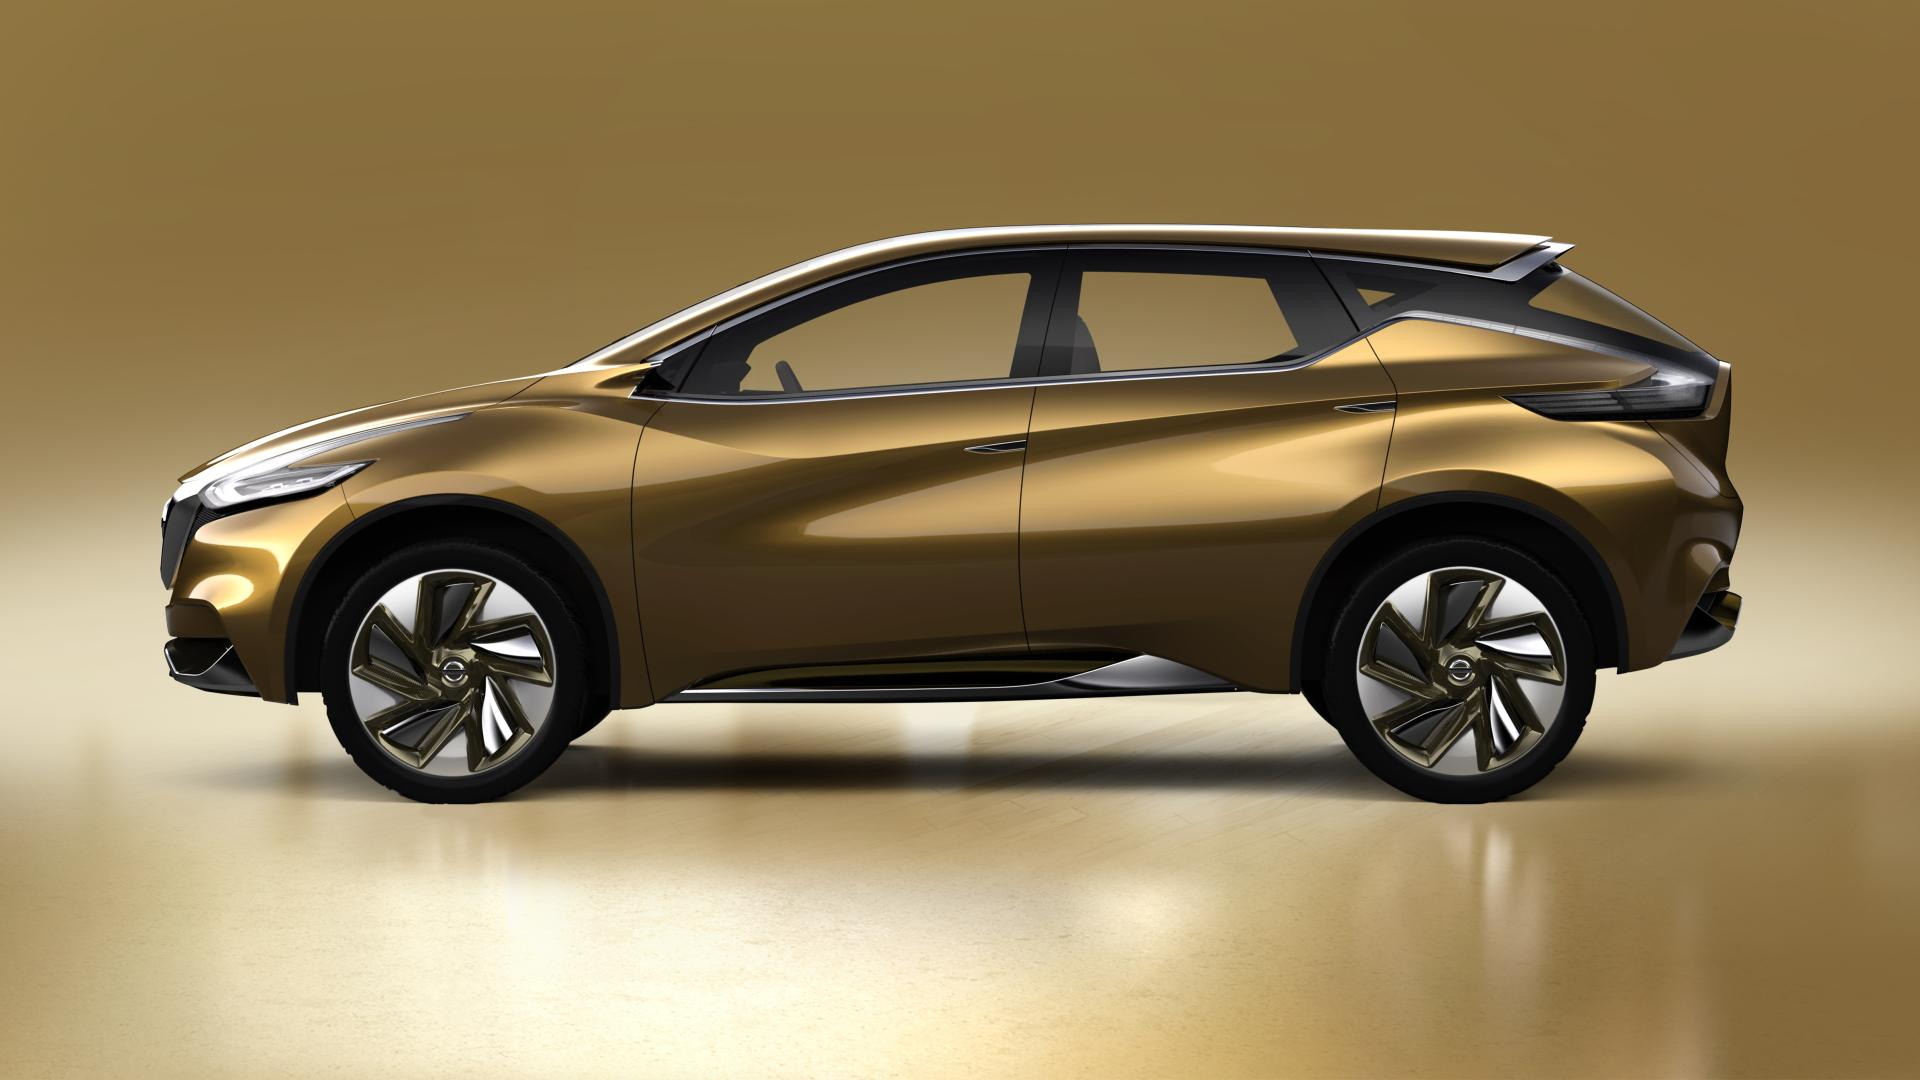 2014 nissan resonance crossover concept pictures news research pricing. Black Bedroom Furniture Sets. Home Design Ideas